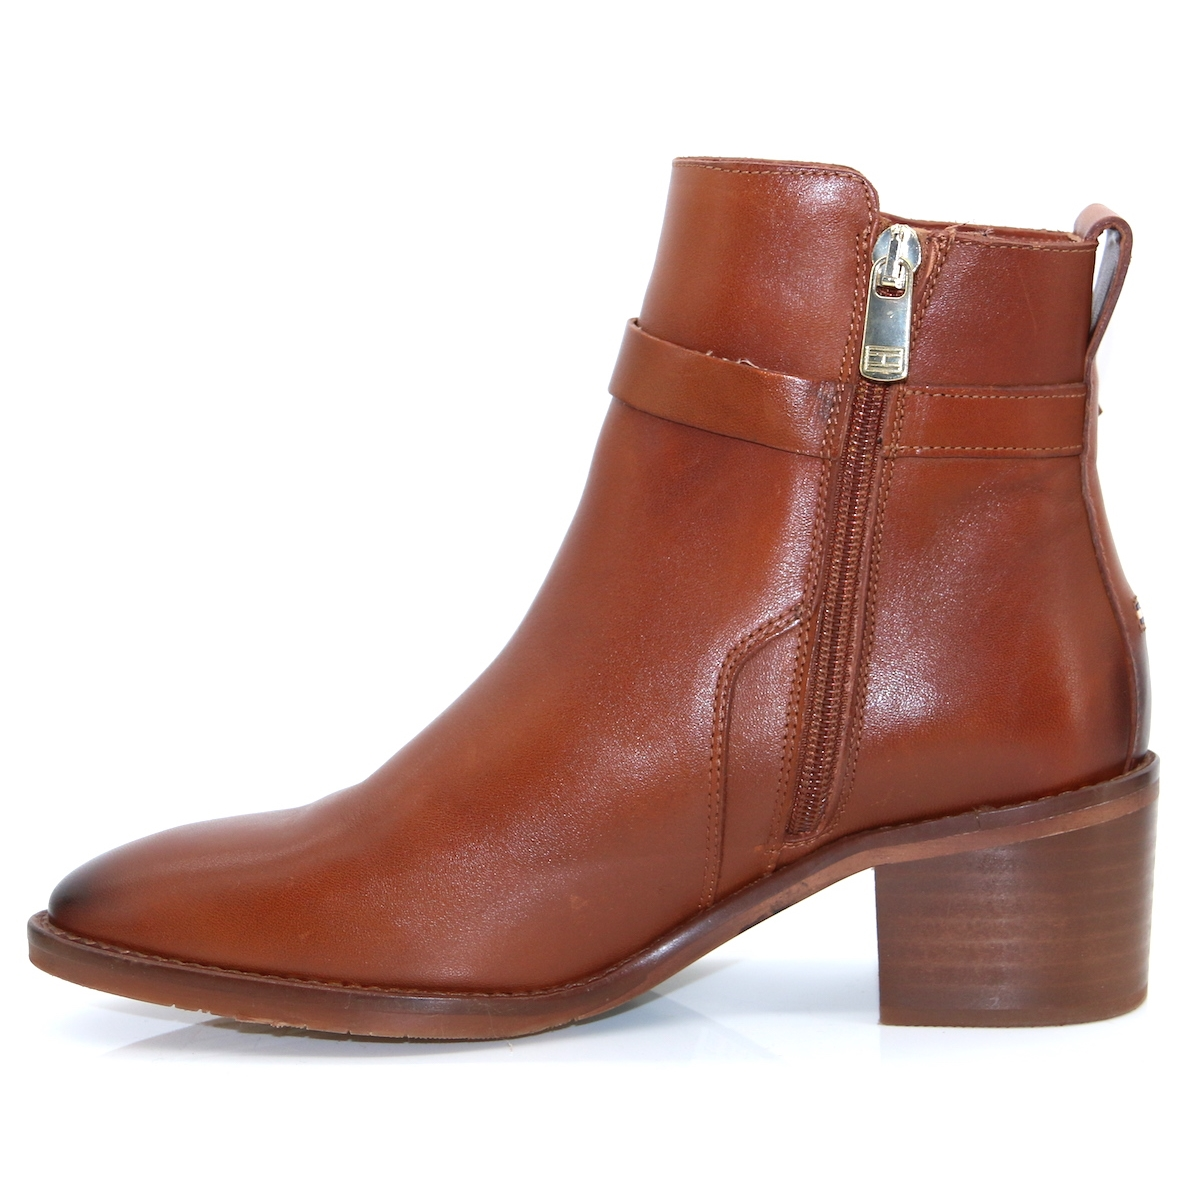 Tommy Hilfiger Brown Hardware Leather Ankle Boots